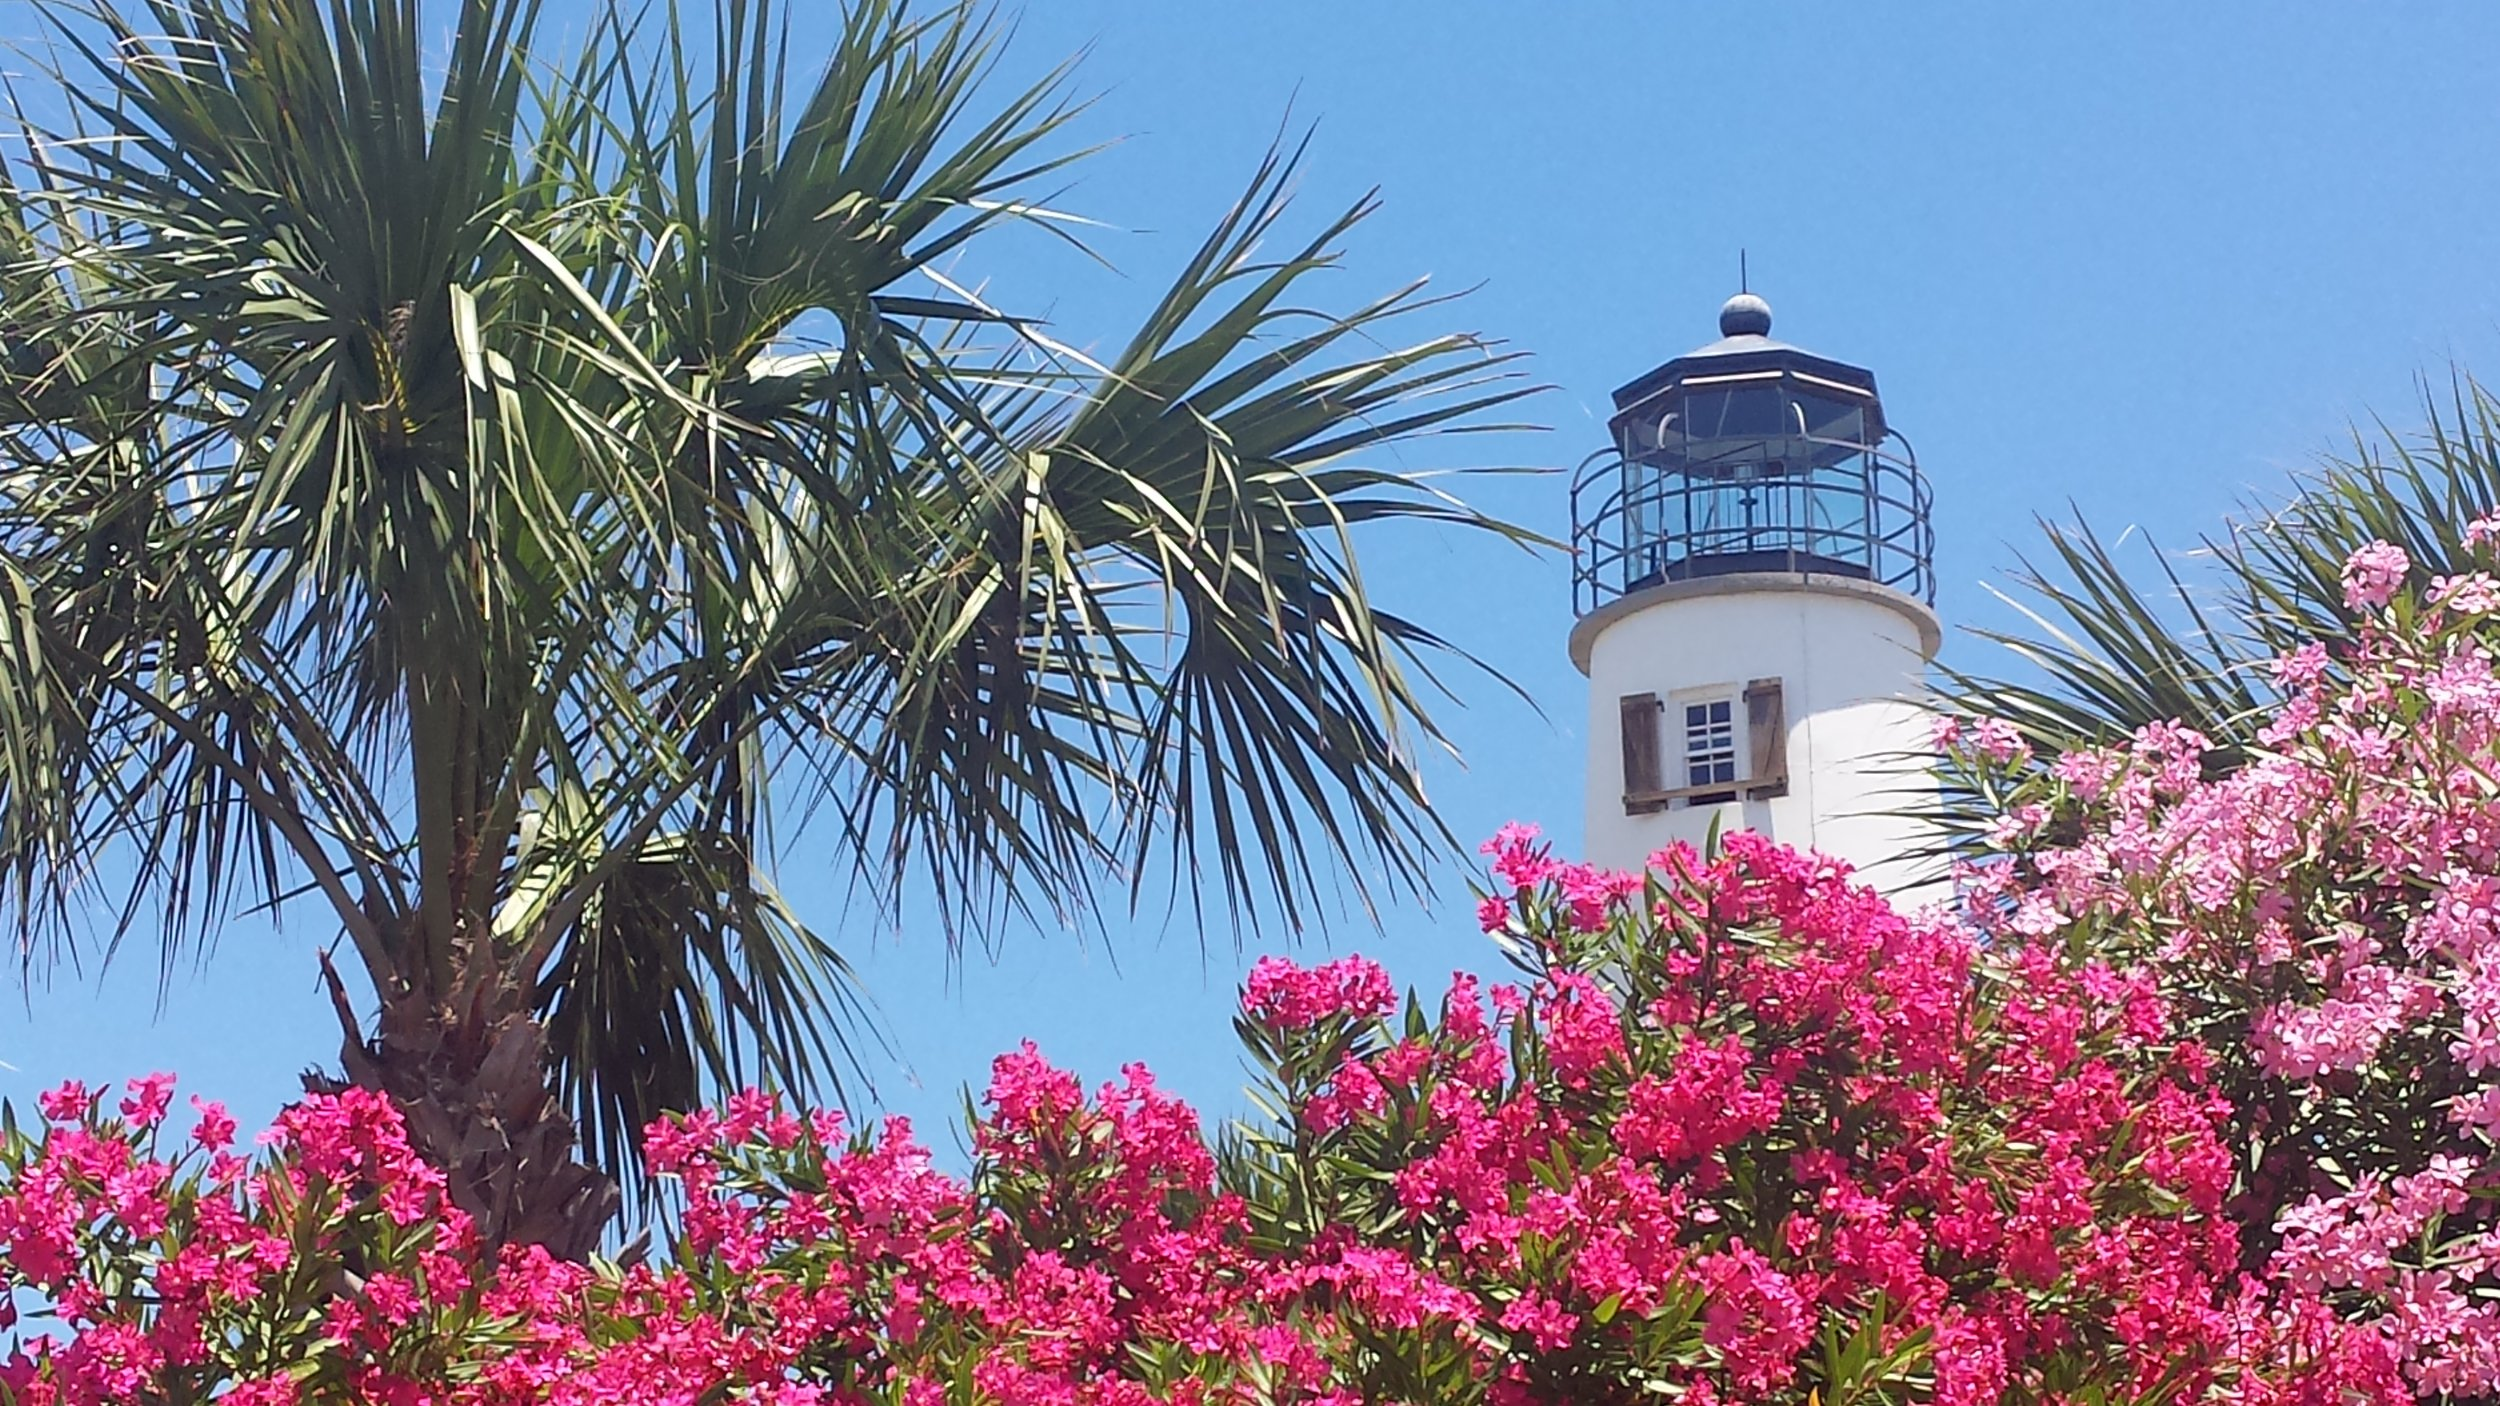 The Lighthouse on St. George Island, Florida stands proud, renovated, and ready to host visitors!